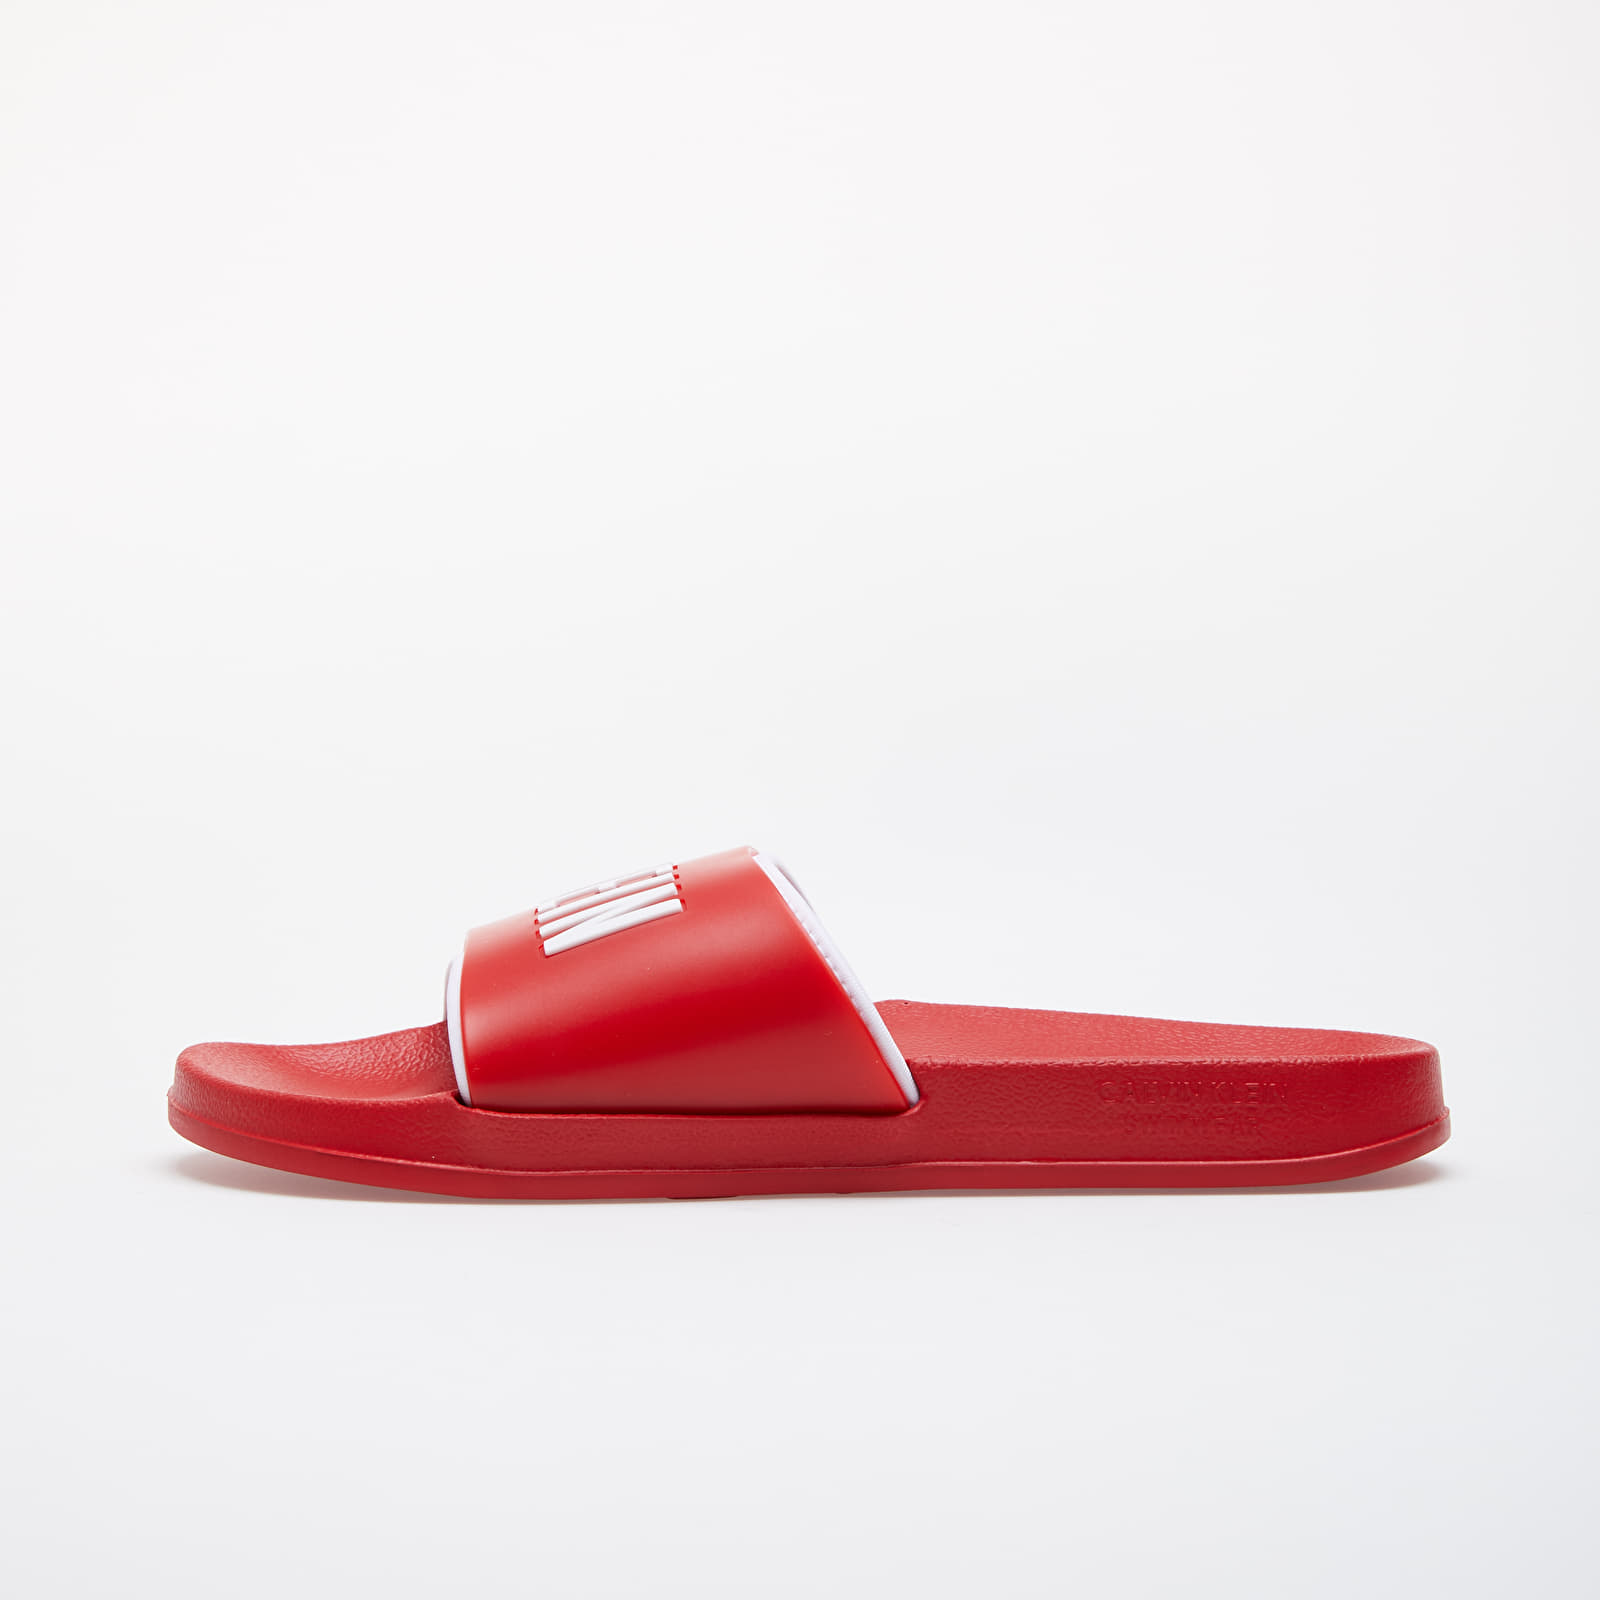 Men's shoes Calvin Klein Slides Red